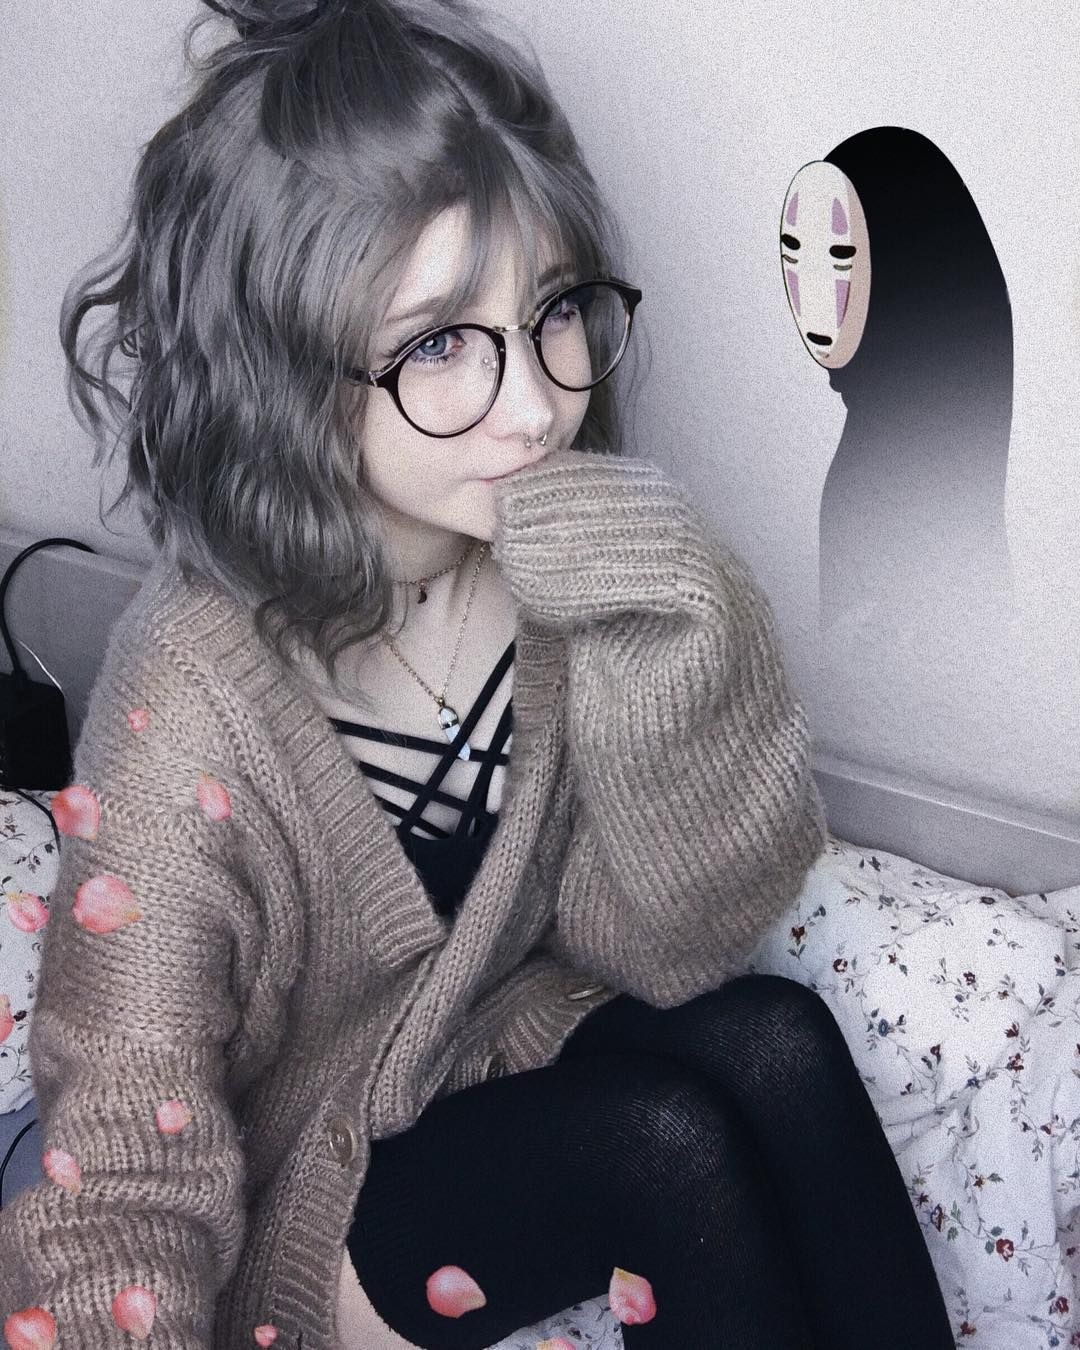 Grunge Cute Anime Girl Aesthetic